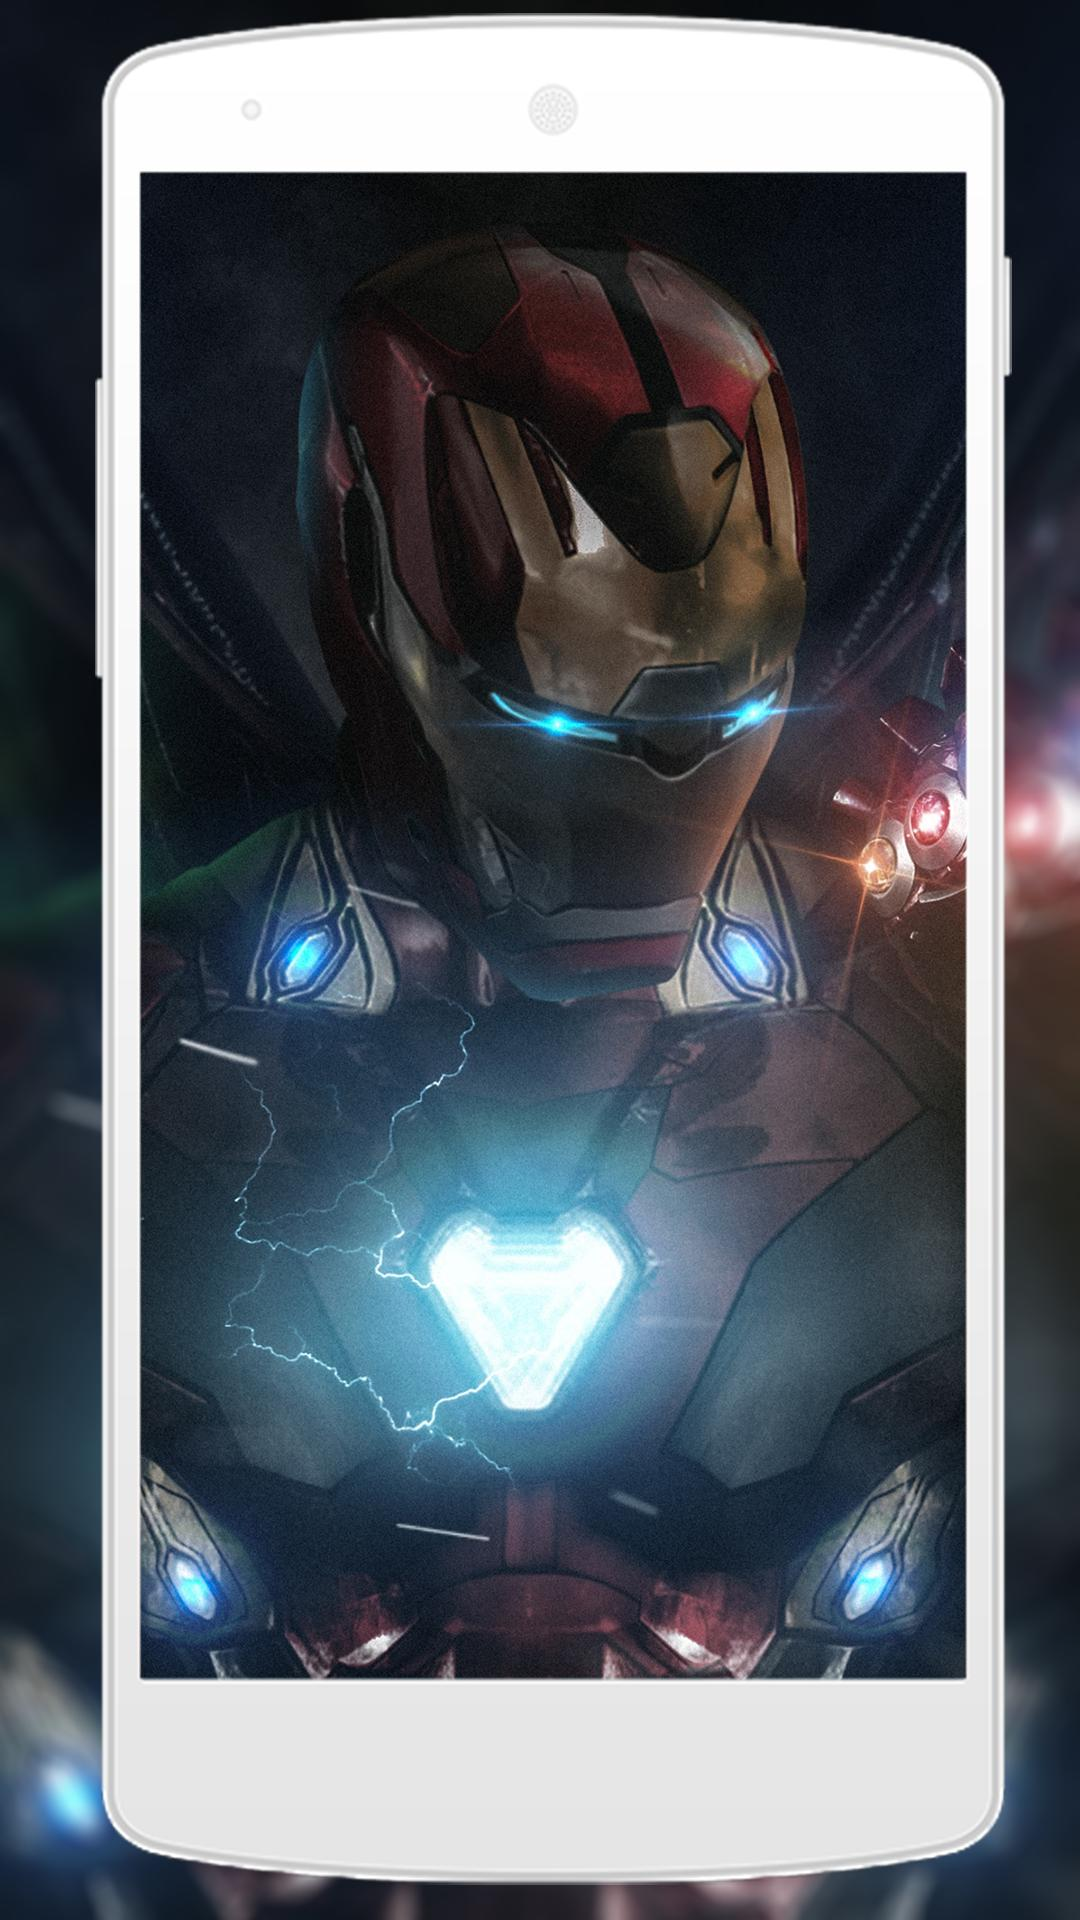 Iron Man Wallpapers Hd 4k For Android Apk Download